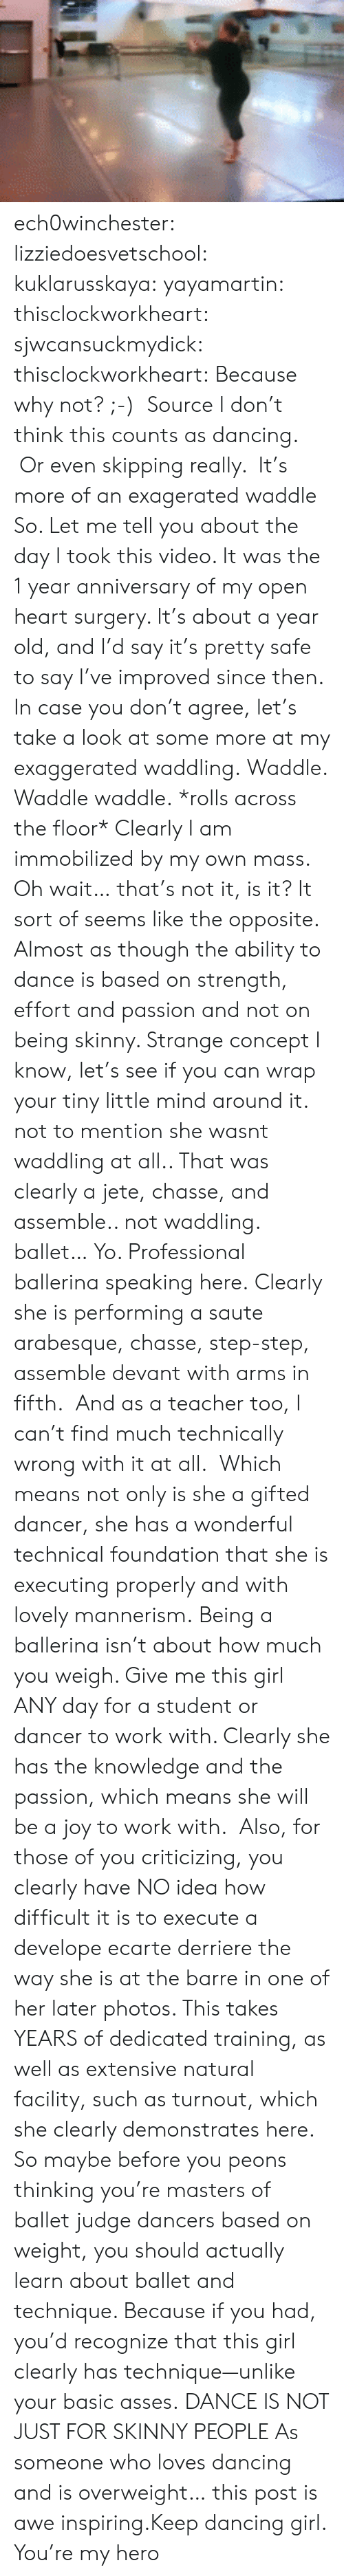 Dancers: ech0winchester:  lizziedoesvetschool: kuklarusskaya:  yayamartin:  thisclockworkheart:  sjwcansuckmydick:  thisclockworkheart:  Because why not? ;-) Source  I don't think this counts as dancing. Or even skipping really. It's more of an exagerated waddle  So. Let me tell you about the day I took this video. It was the 1 year anniversary of my open heart surgery. It's about a year old, and I'd say it's pretty safe to say I've improved since then. In case you don't agree, let's take a look at some more at my exaggerated waddling. Waddle. Waddle waddle. *rolls across the floor* Clearly I am immobilized by my own mass. Oh wait… that's not it, is it? It sort of seems like the opposite. Almost as though the ability to dance is based on strength, effort and passion and not on being skinny. Strange concept I know, let's see if you can wrap your tiny little mind around it.  not to mention she wasnt waddling at all.. That was clearly a jete, chasse, and assemble.. not waddling. ballet…   Yo. Professional ballerina speaking here. Clearly she is performing a saute arabesque, chasse, step-step, assemble devant with arms in fifth. And as a teacher too, I can't find much technically wrong with it at all. Which means not only is she a gifted dancer, she has a wonderful technical foundation that she is executing properly and with lovely mannerism. Being a ballerina isn't about how much you weigh. Give me this girl ANY day for a student or dancer to work with. Clearly she has the knowledge and the passion, which means she will be a joy to work with. Also, for those of you criticizing, you clearly have NO idea how difficult it is to execute a develope ecarte derriere the way she is at the barre in one of her later photos. This takes YEARS of dedicated training, as well as extensive natural facility, such as turnout, which she clearly demonstrates here. So maybe before you peons thinking you're masters of ballet judge dancers based on weight, you should actually learn about bal